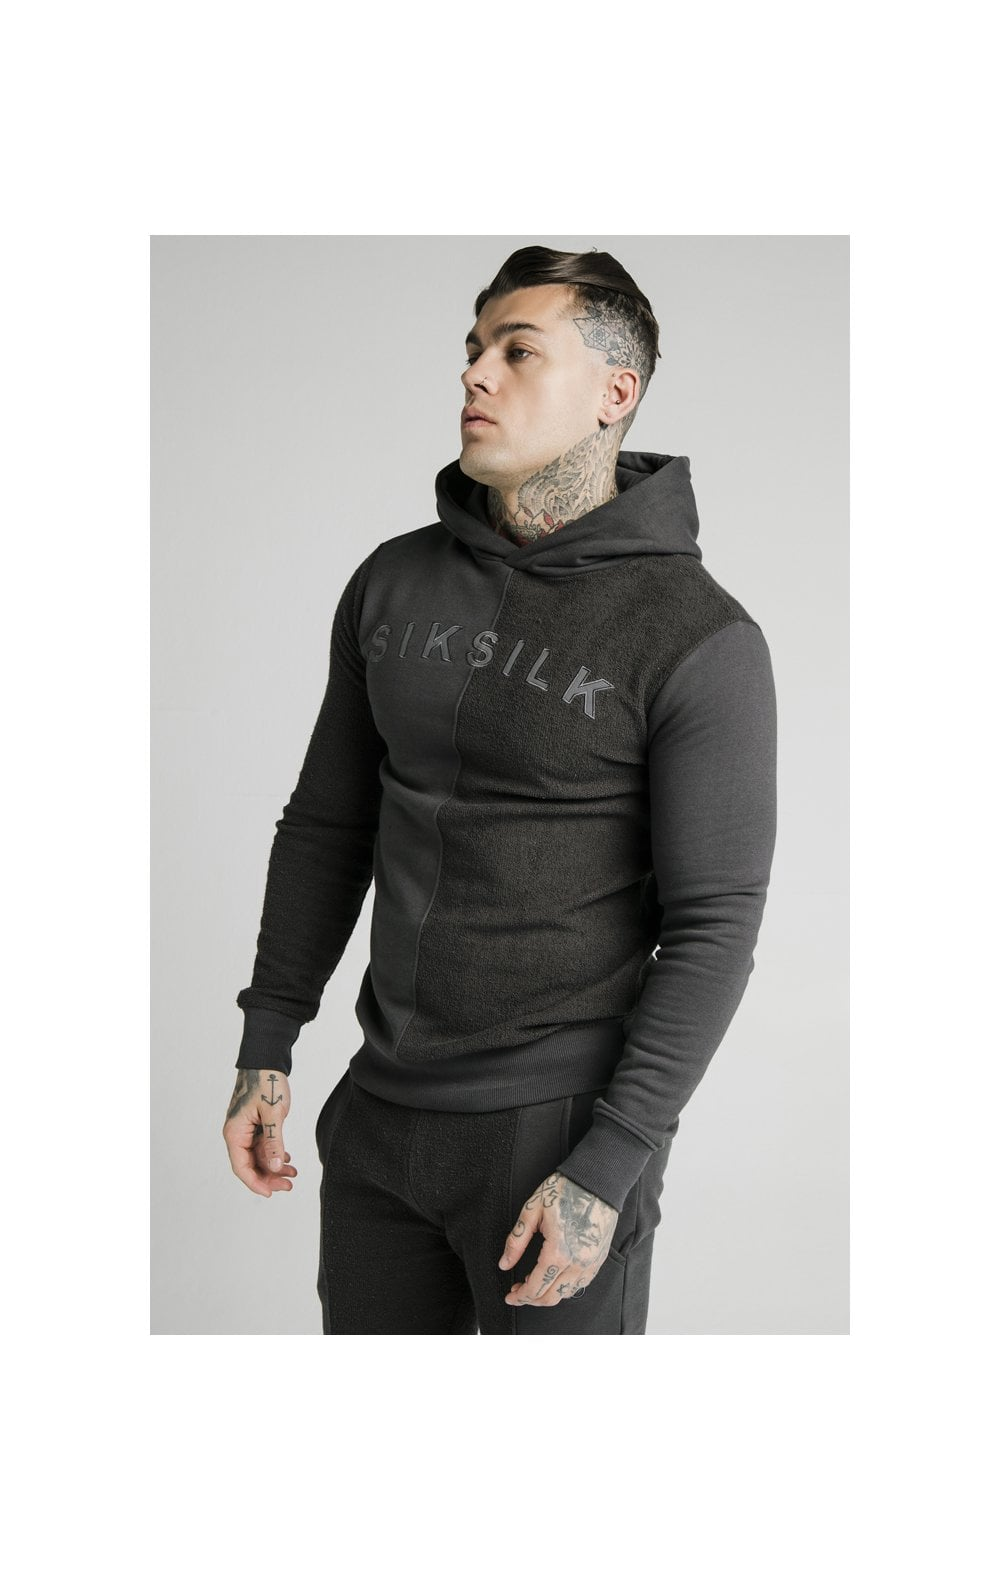 SikSilk Half & Half Overhead Hoodie – Washed Grey (1)